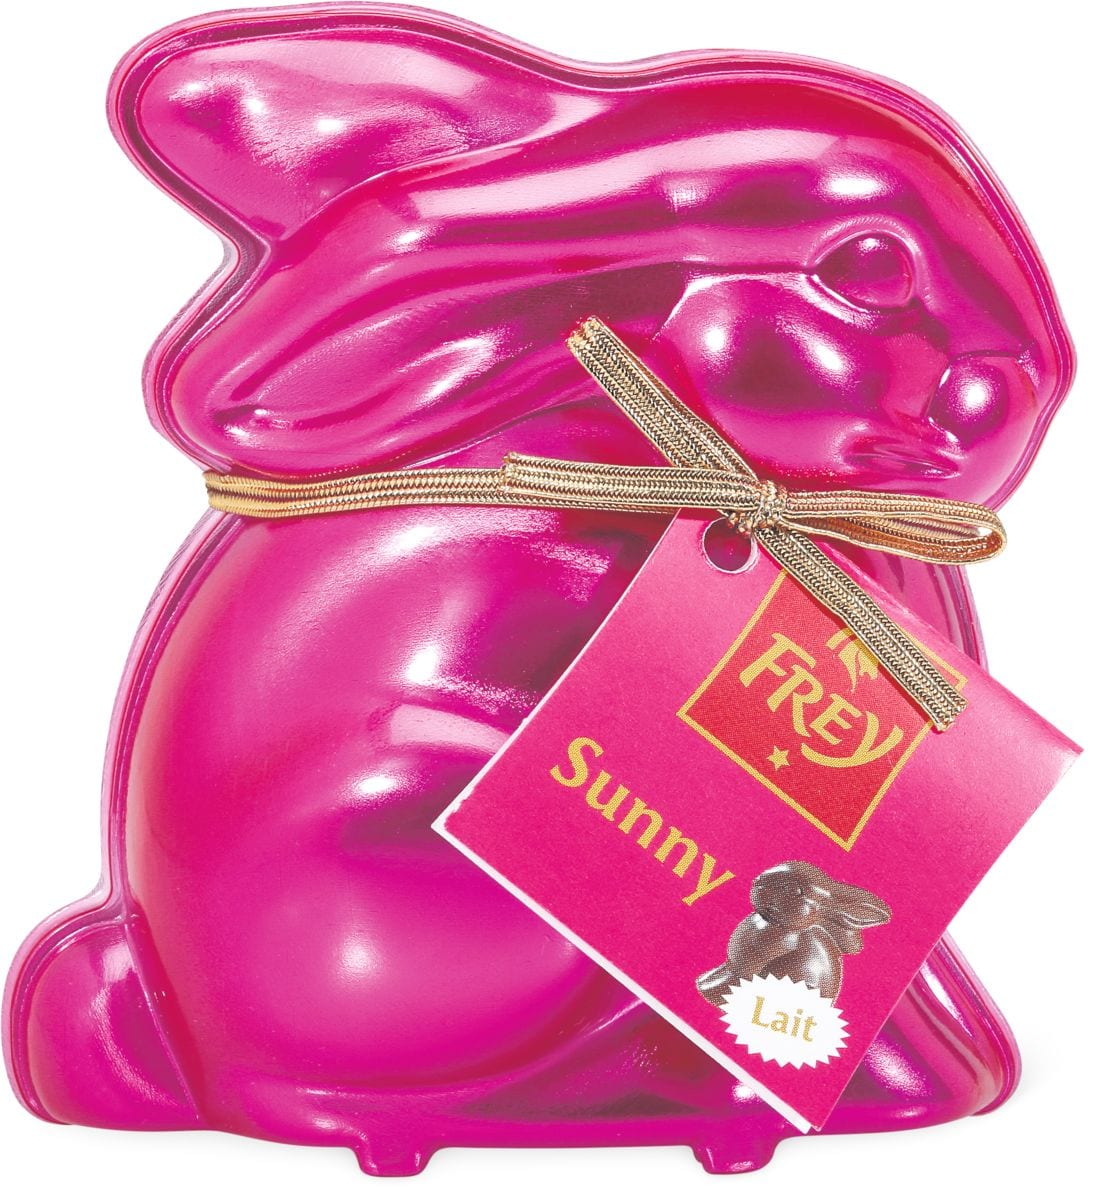 Frey Bunny Sunny, Funny & Lucky Milch assortiert, 55g